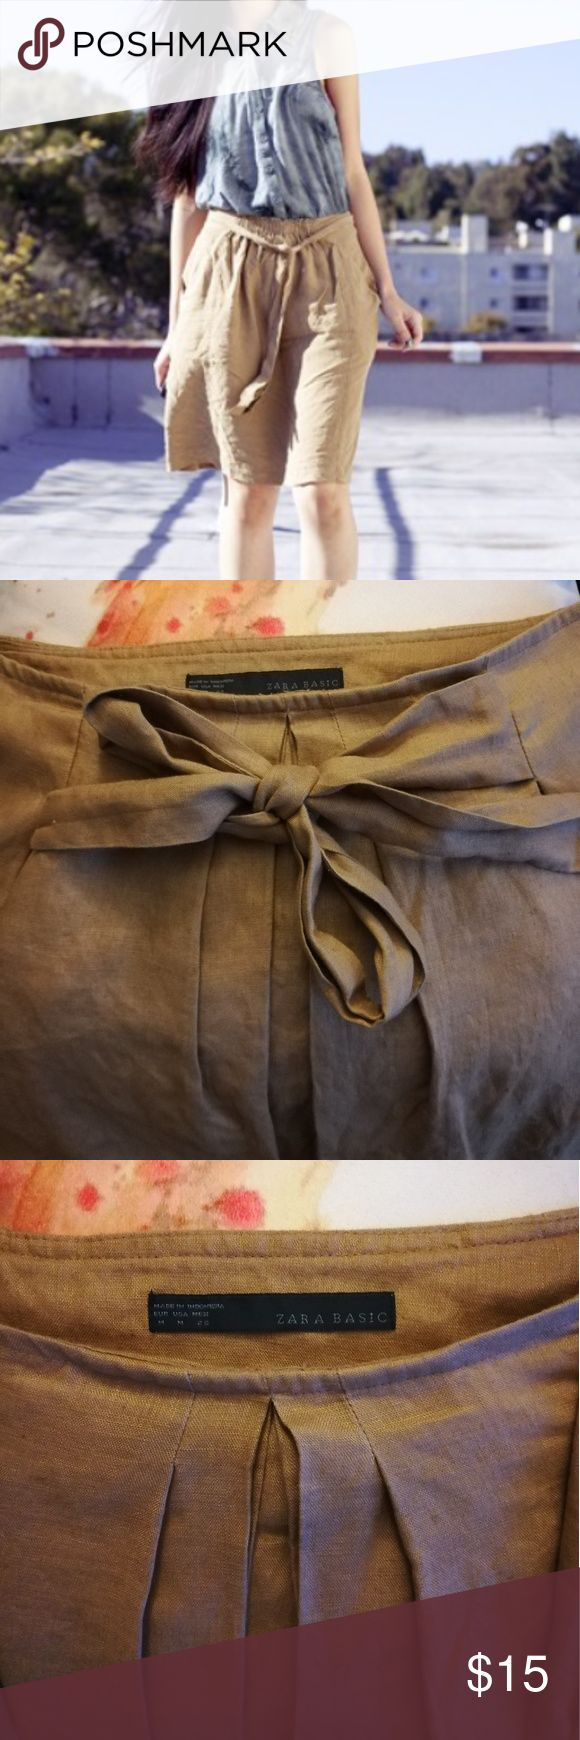 Zara Skirt This preloved Zara linen skirt has a tie front over pleats with a side zip and a slip.  Don't hesitate to ask for any additional information or pics  The last picture is the same skirt I just couldn't find a stock photo in the khaki color. Zara Skirts